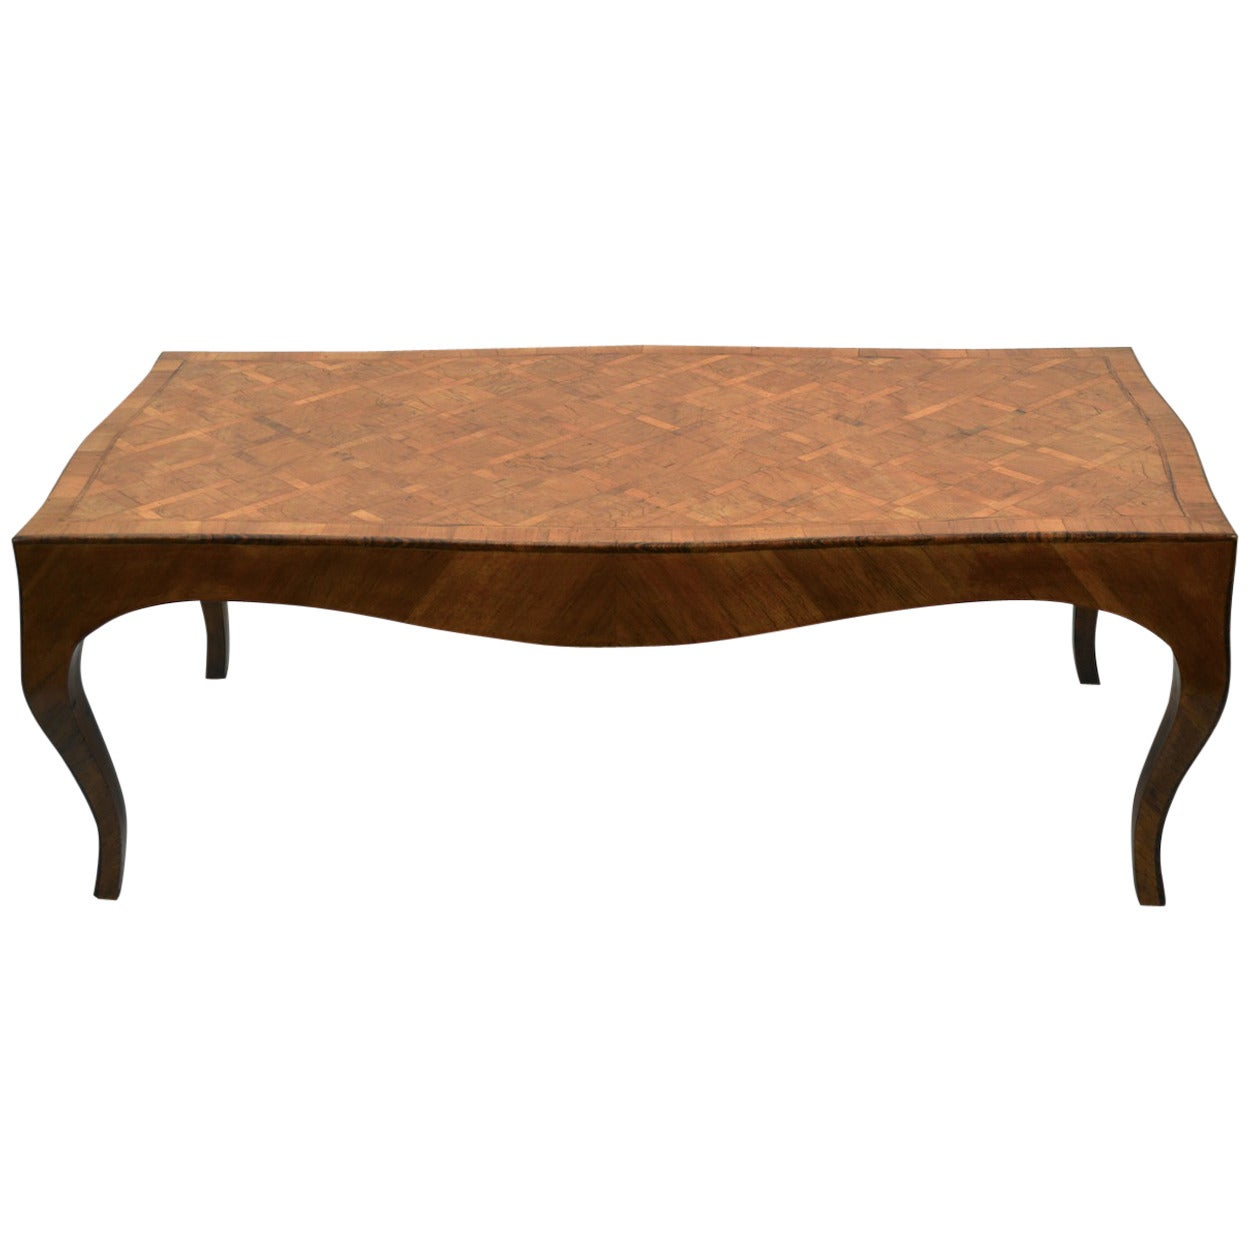 Italian Olive Wood Parquetry Inlay Coffee or Cocktail Table